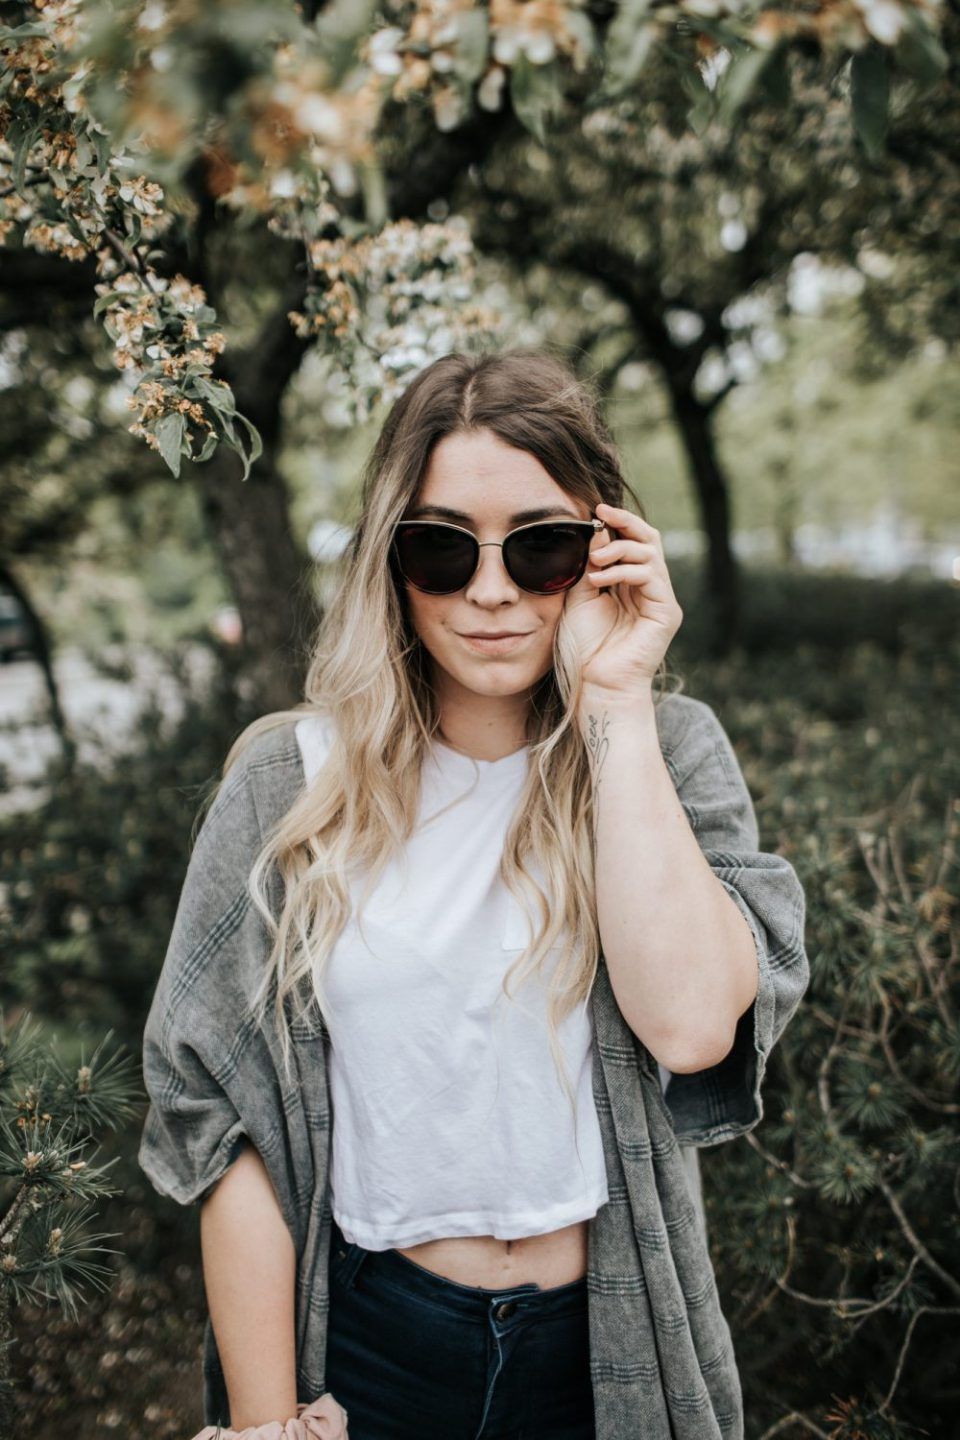 Oversized Cat Eye Women's Sunglasses | 5 Summer Sunglass Trends